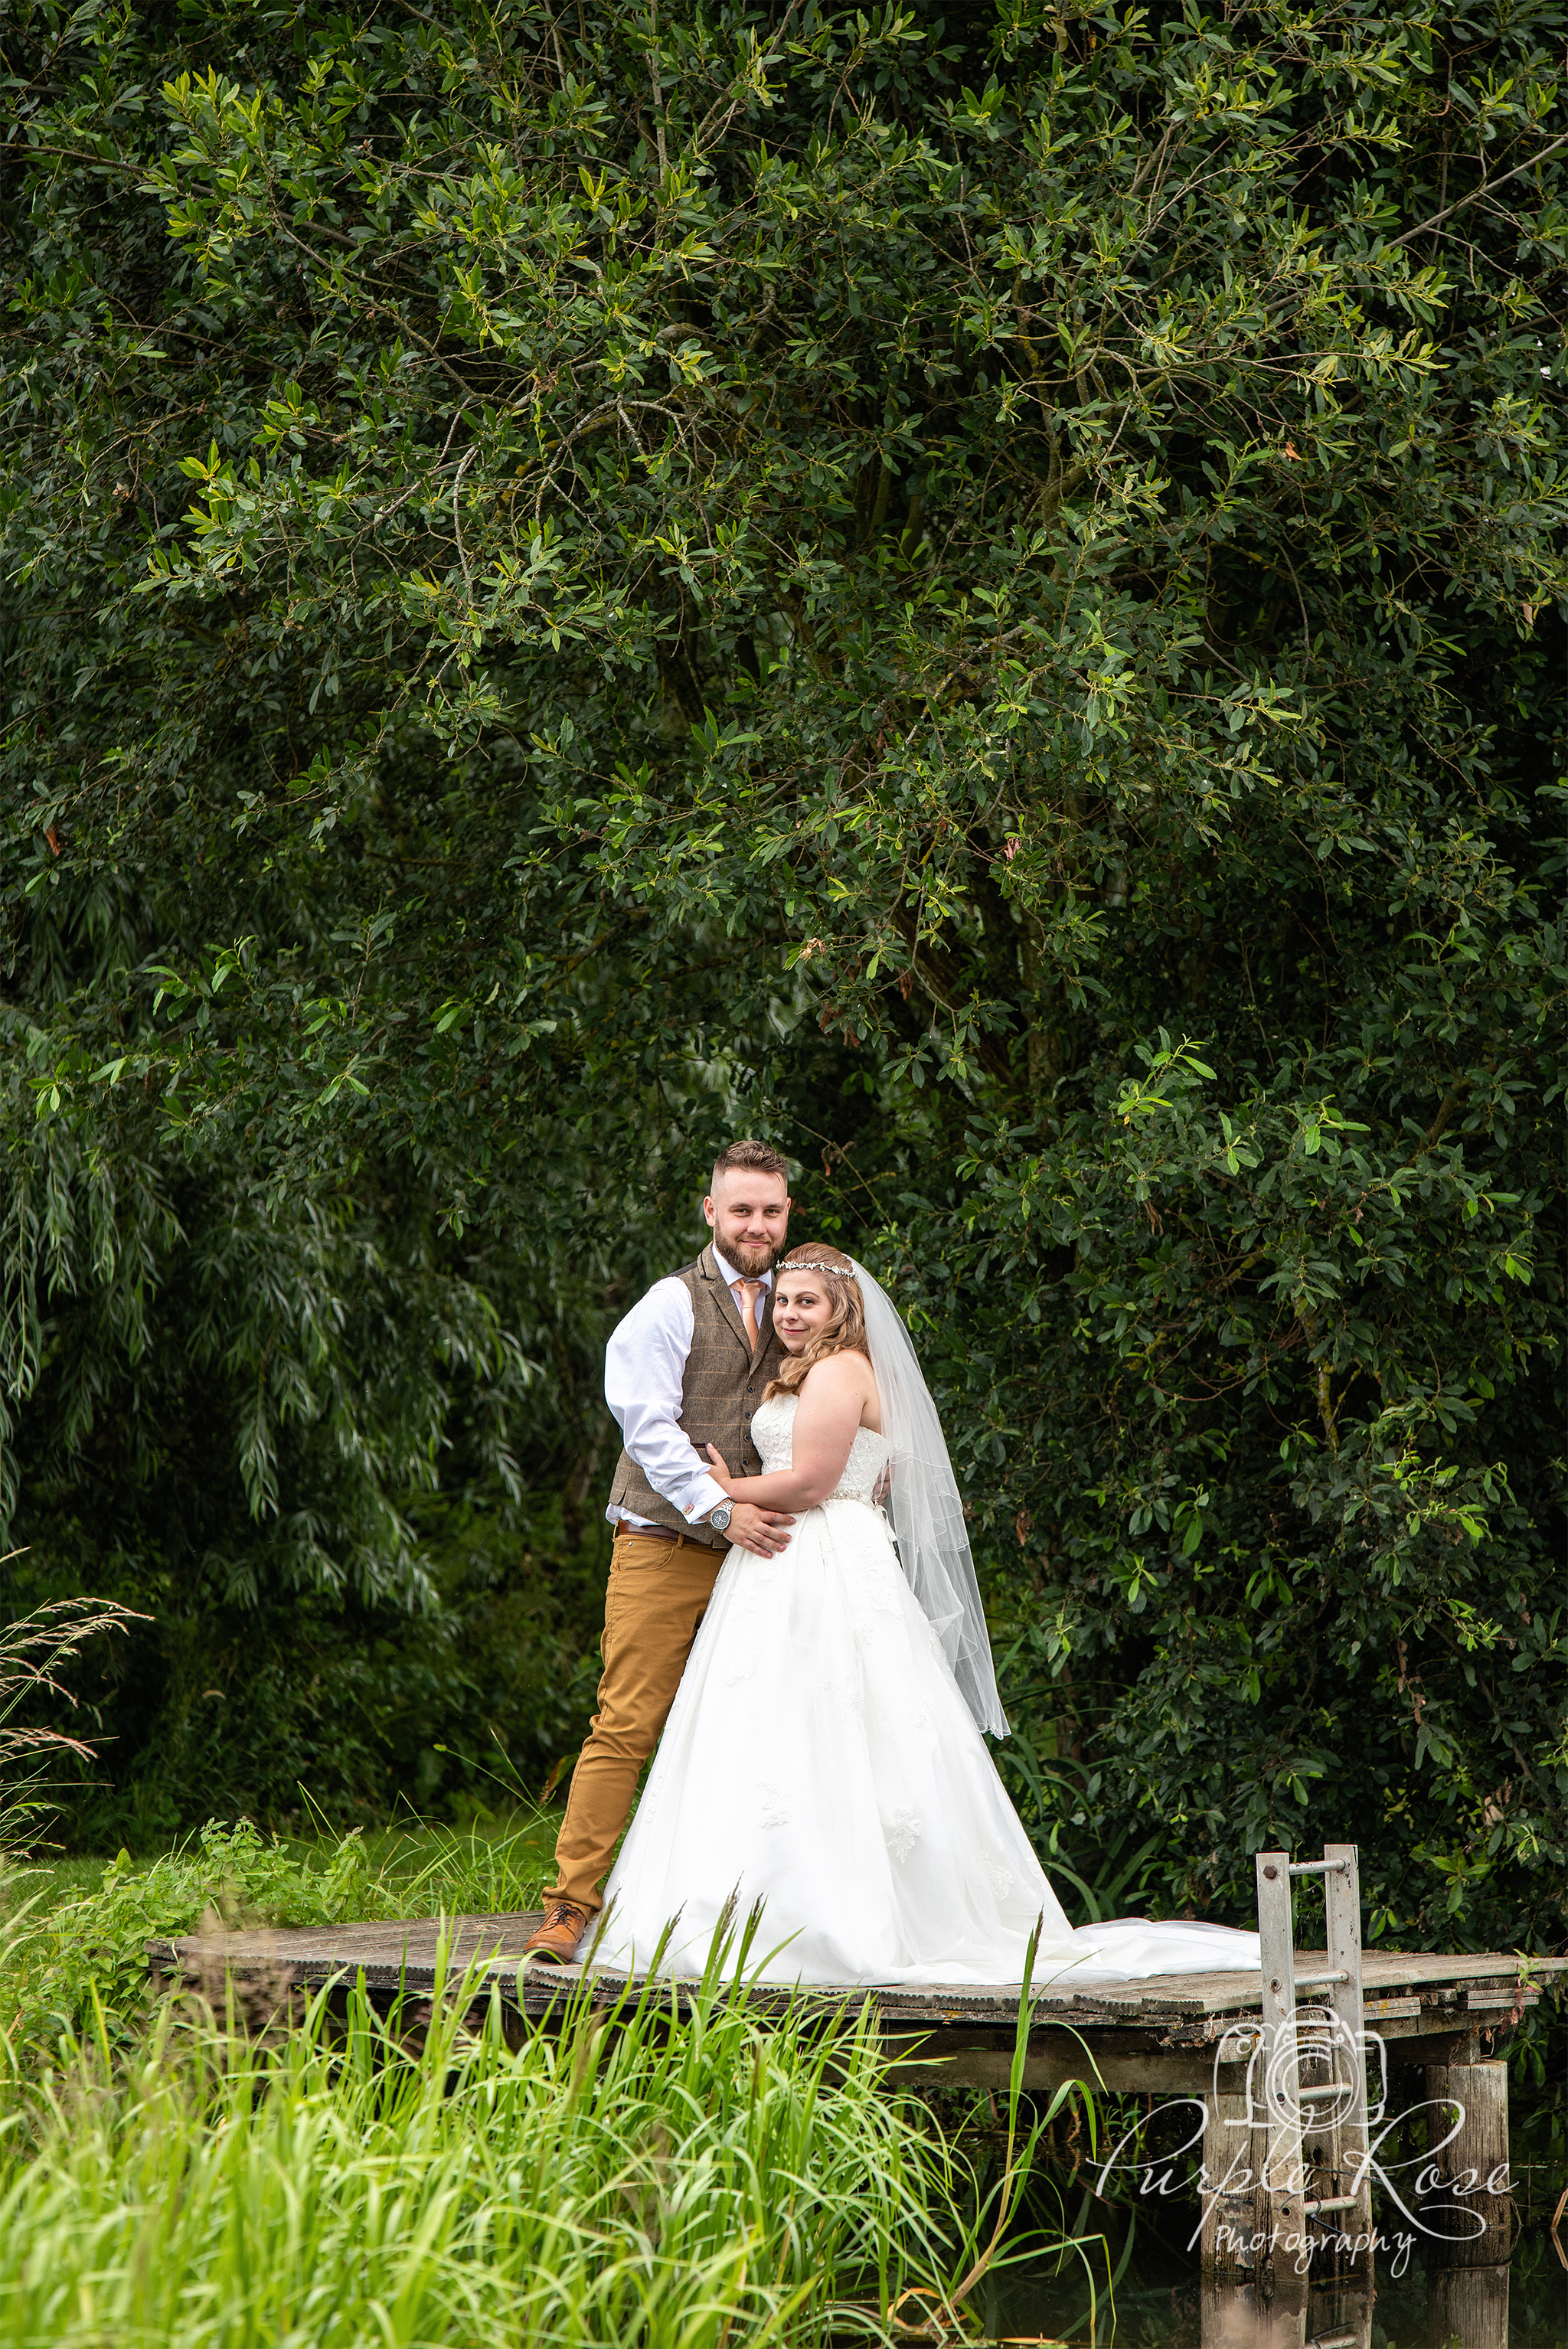 Bride and Groom standing on a fishing jetty